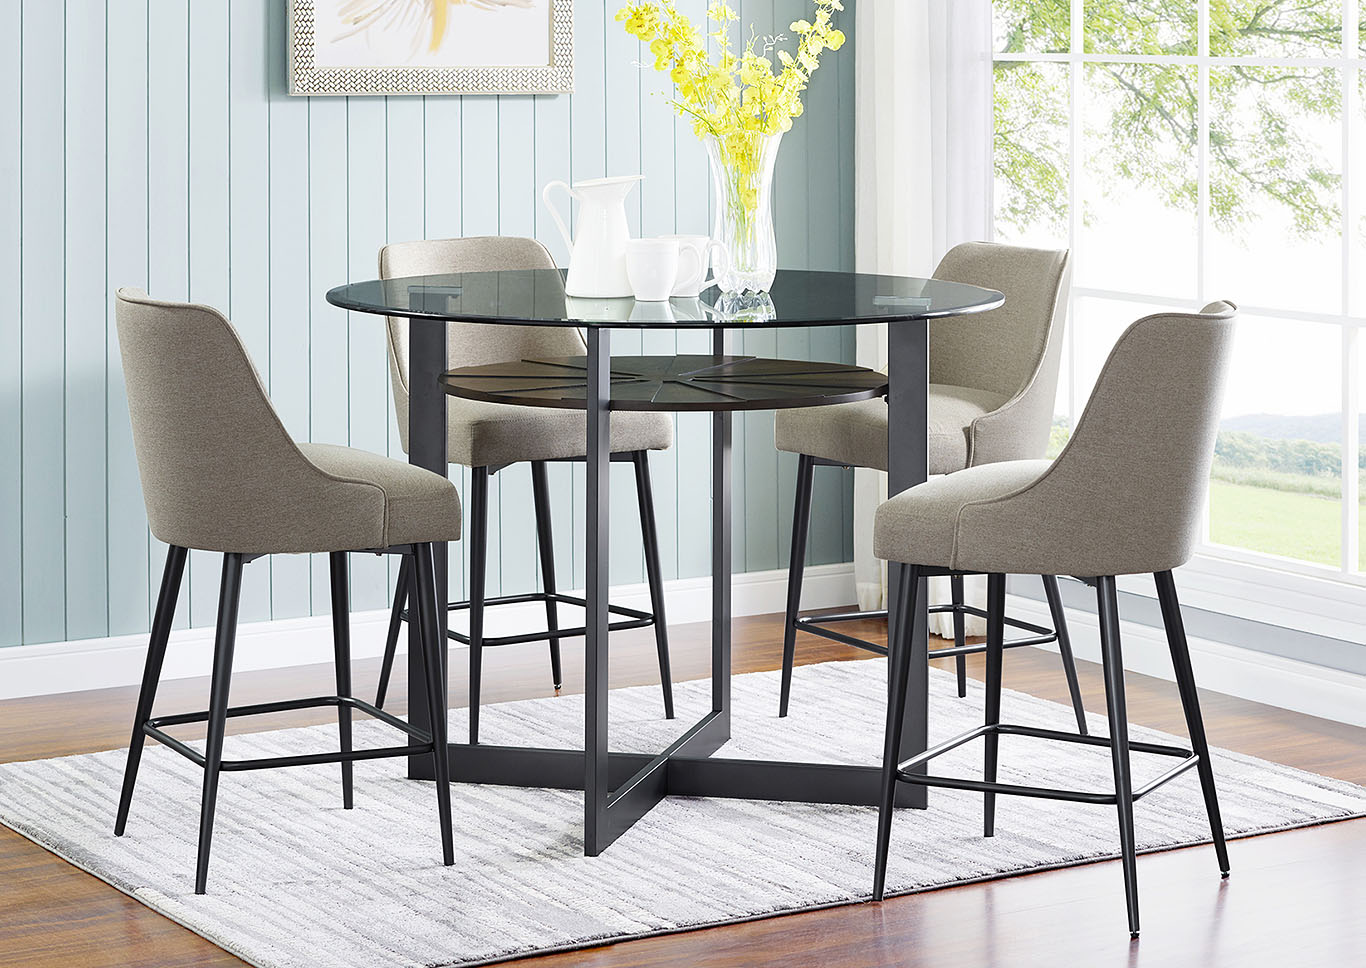 Get Glass Top Dining Table Sets PNG